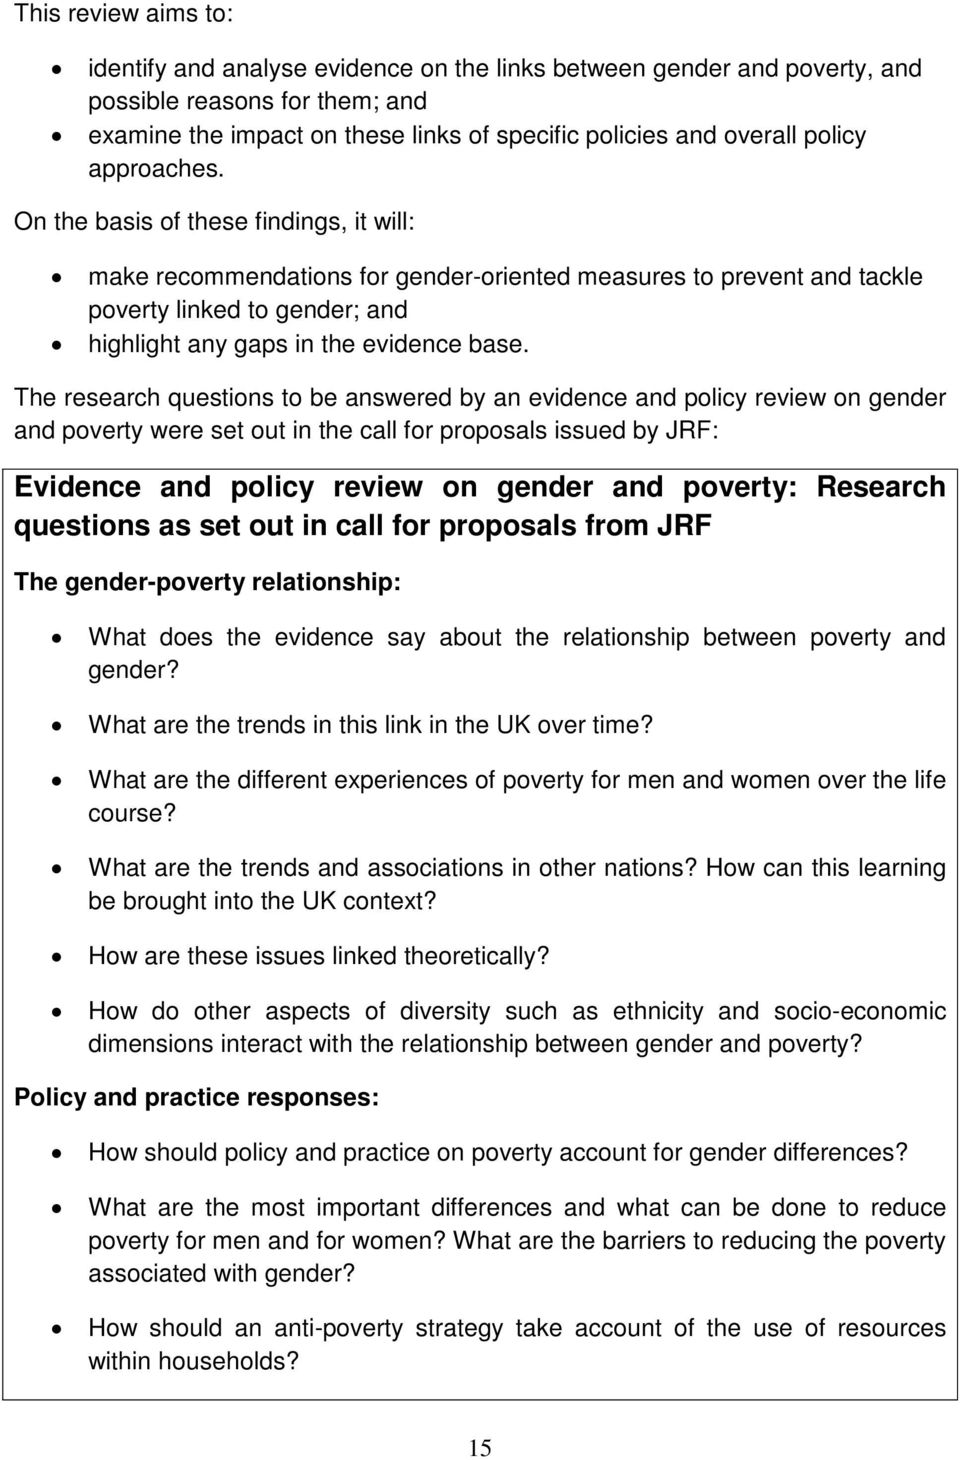 On the basis of these findings, it will: make recommendations for gender-oriented measures to prevent and tackle poverty linked to gender; and highlight any gaps in the evidence base.